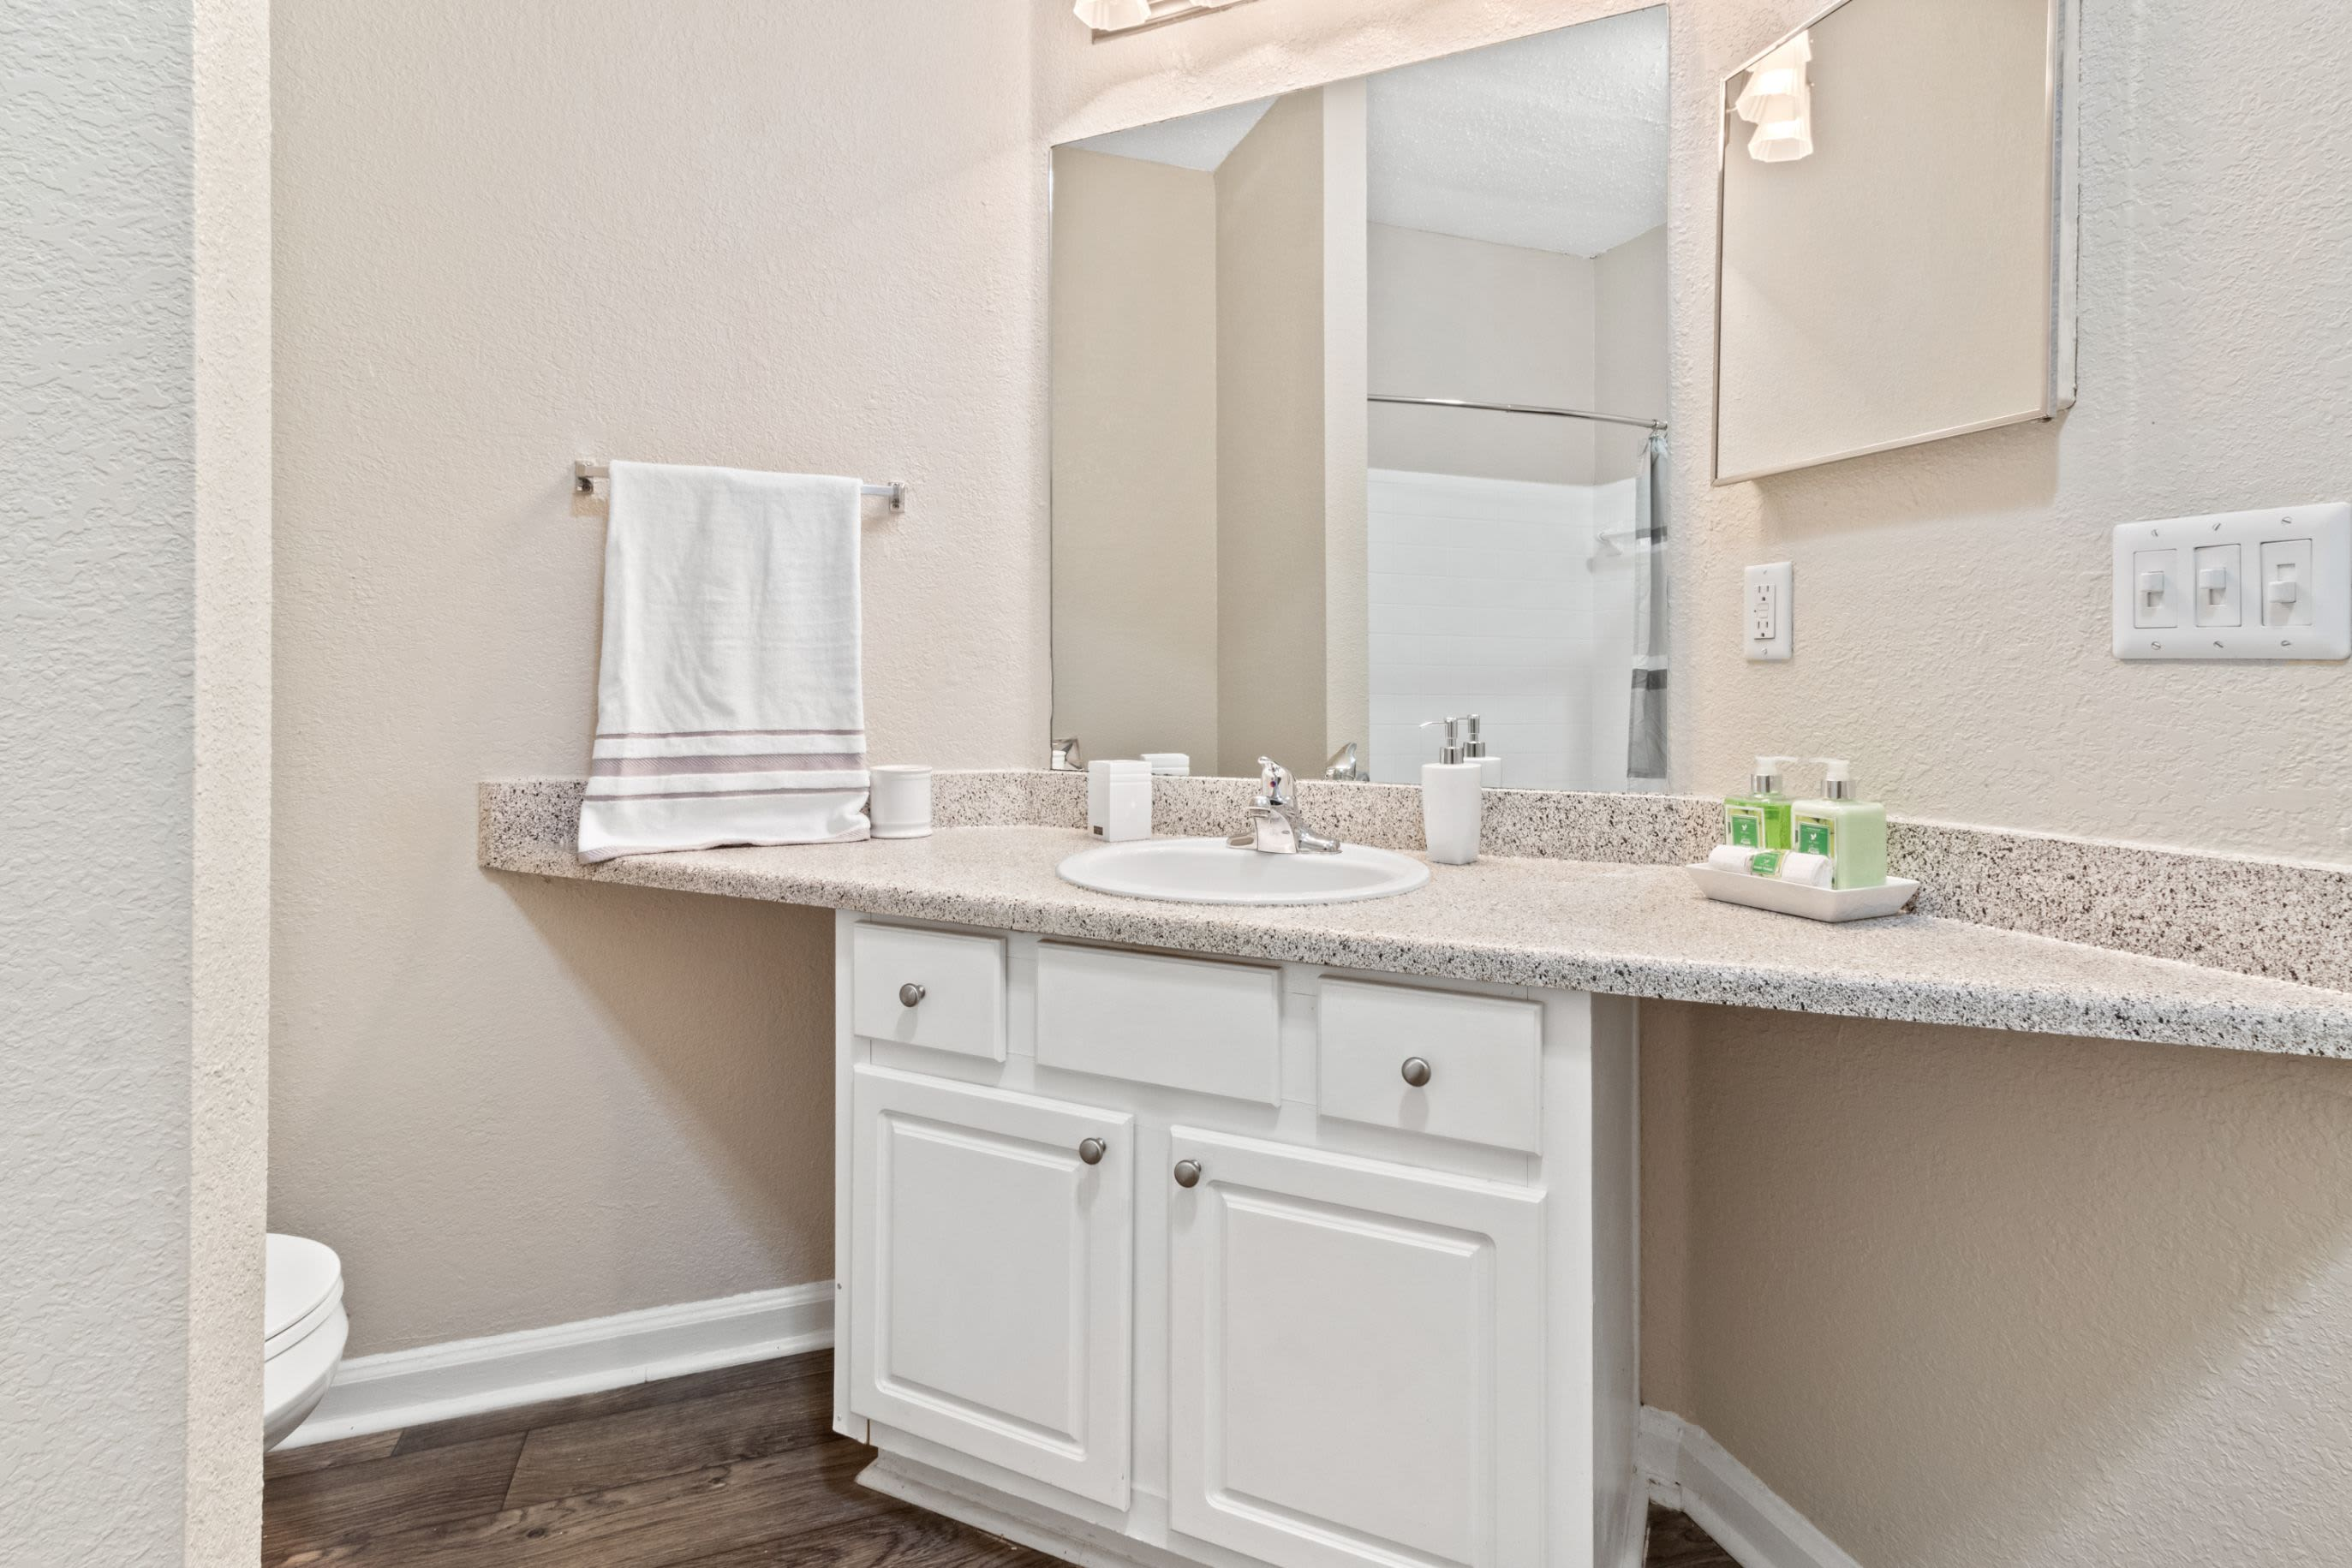 Bathroom with white cabinetry at Marquis Midtown West in Atlanta, Georgia